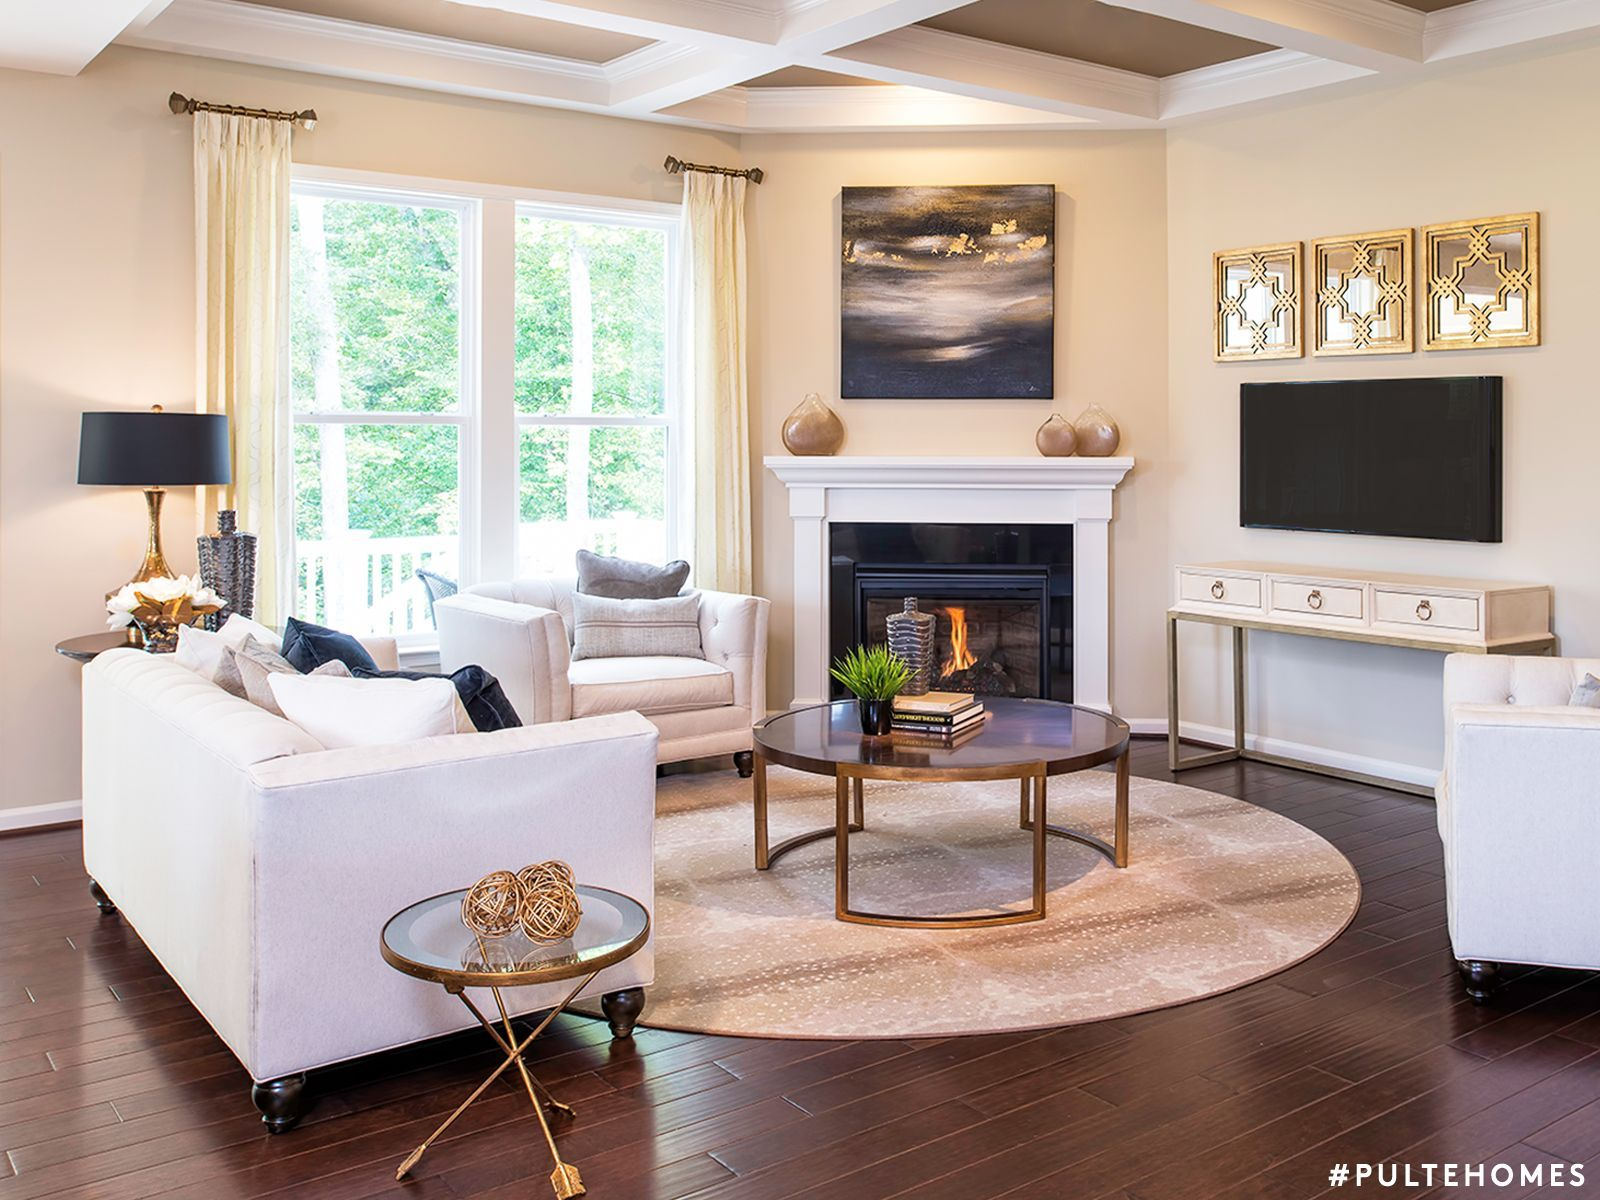 13+ Best Corner Fireplace Ideas for Small Space | Corner ... on Small Space Small Living Room With Fireplace  id=85259